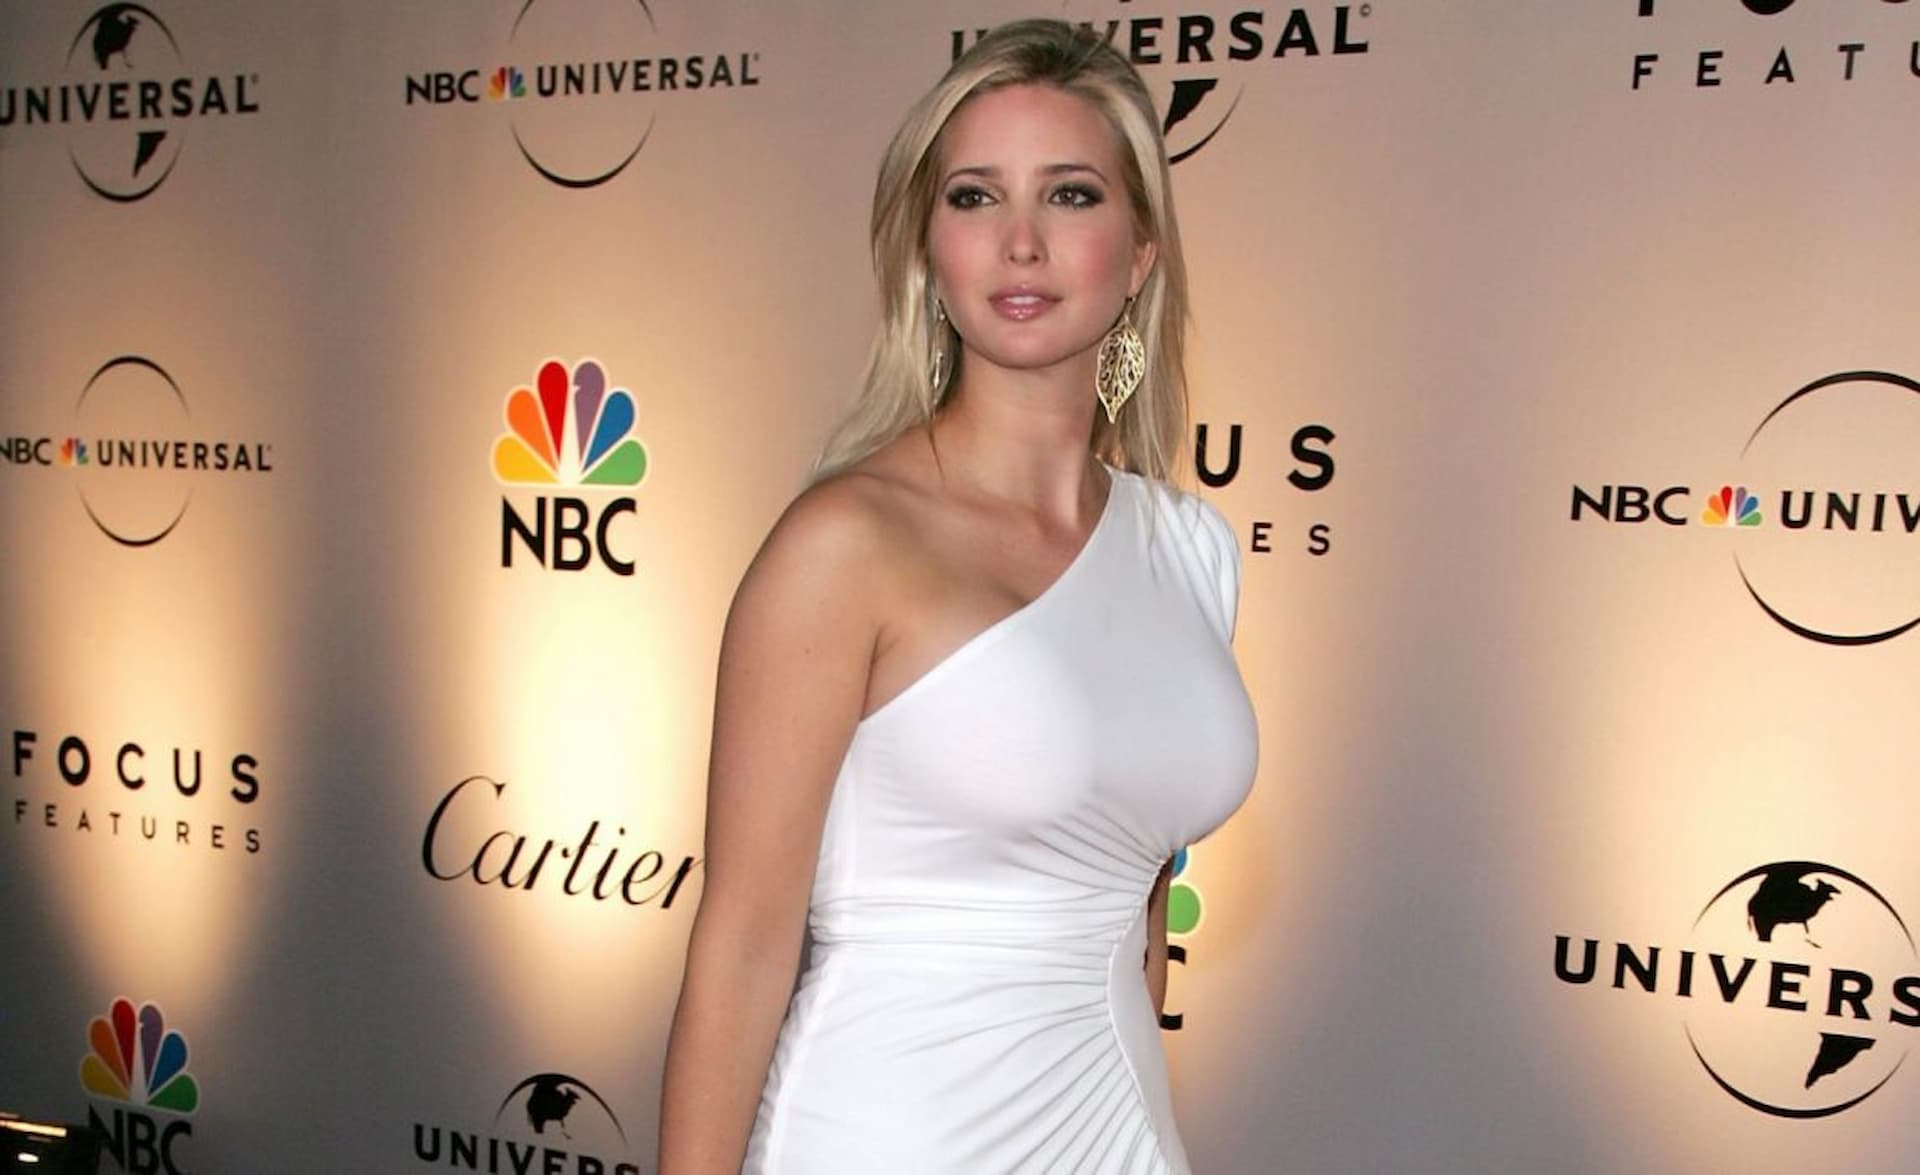 best hollywood actresses, famous hollywood stars, female hollywood stars, hollywood celebrities, hot hollywood actresses, hottest celebrities, Ivanka Trump age, Ivanka Trump bikini, Ivanka Trump boyfriend, Ivanka Trump bra size, Ivanka Trump breast size, Ivanka Trump dress size, Ivanka Trump eyes color, Ivanka Trump favorite exercise, Ivanka Trump favorite food, Ivanka Trump favorite perfume, Ivanka Trump favorite sport, Ivanka Trump feet size, Ivanka Trump full-body statistics, Ivanka Trump height, Ivanka Trump instagram, Ivanka Trump Measurements, Ivanka Trump movies, Ivanka Trump net worth, Ivanka Trump personal info, Ivanka Trump shoe, Ivanka Trump wallpapers, Ivanka Trump weight, most famous hollywood actresses, top female hollywood stars